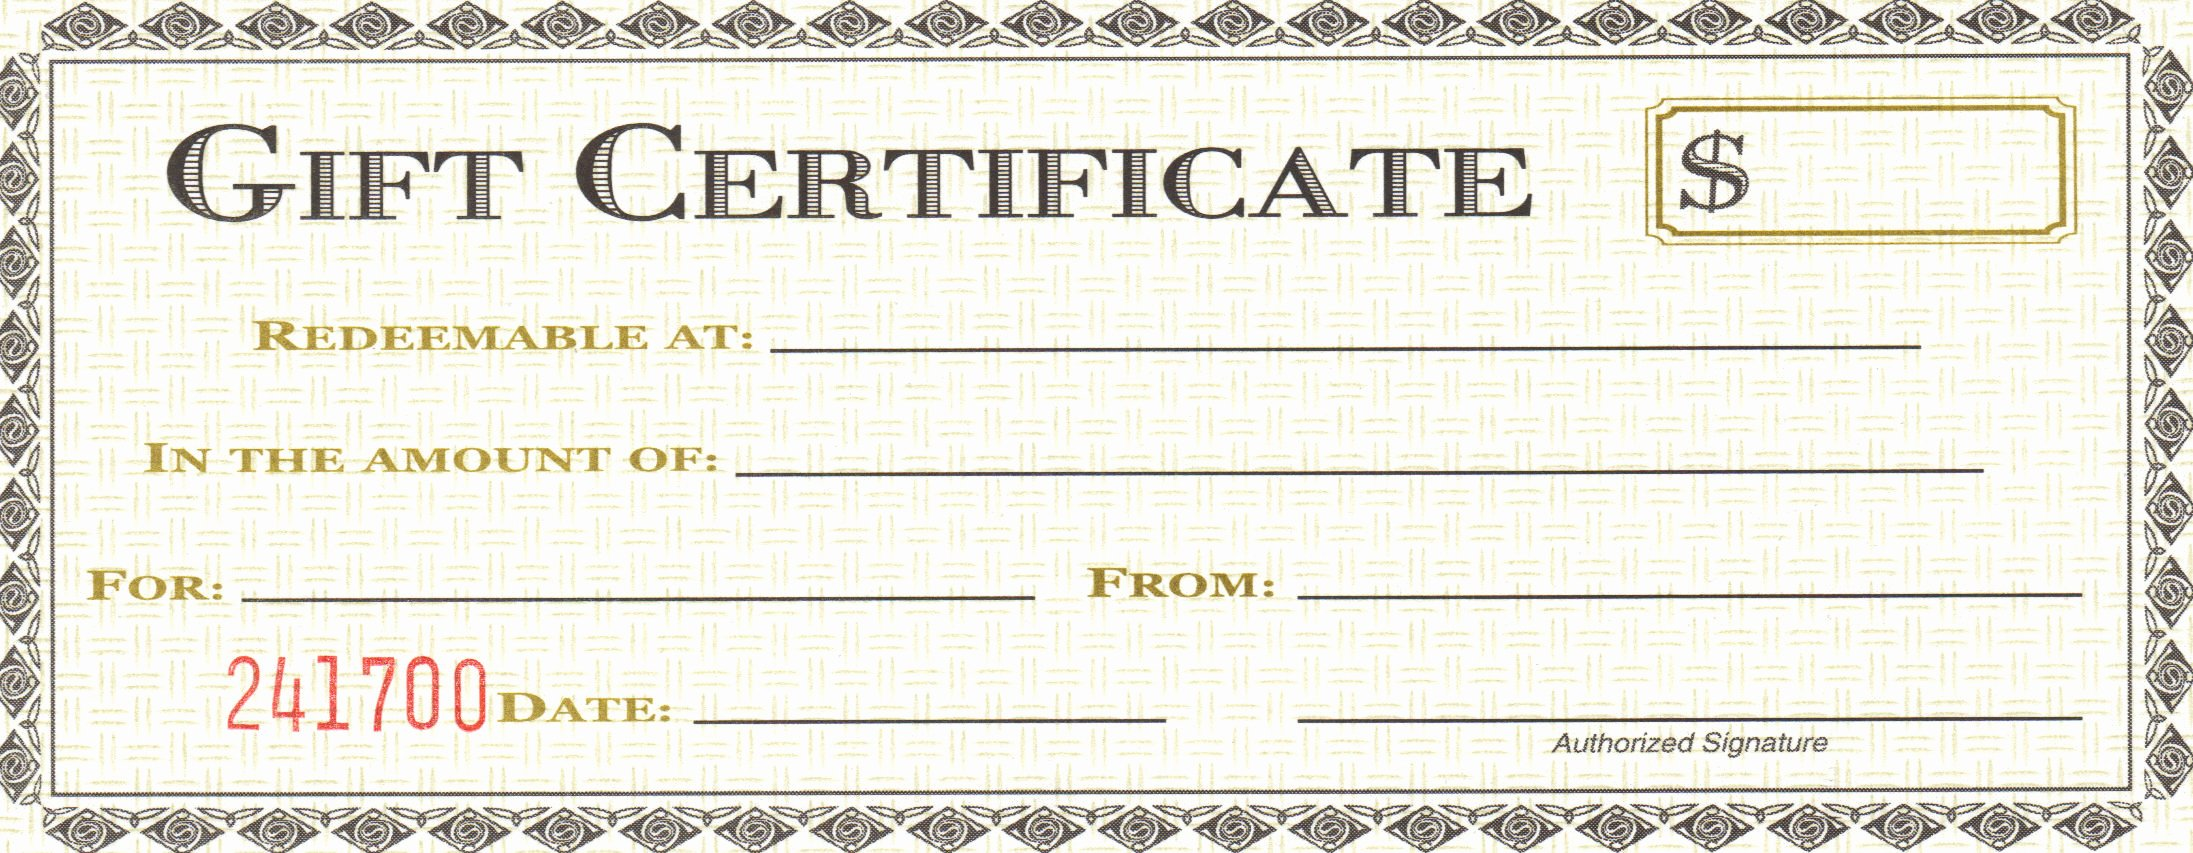 Restaurant Gift Certificate Template Lovely 28 Cool Printable Gift Certificates